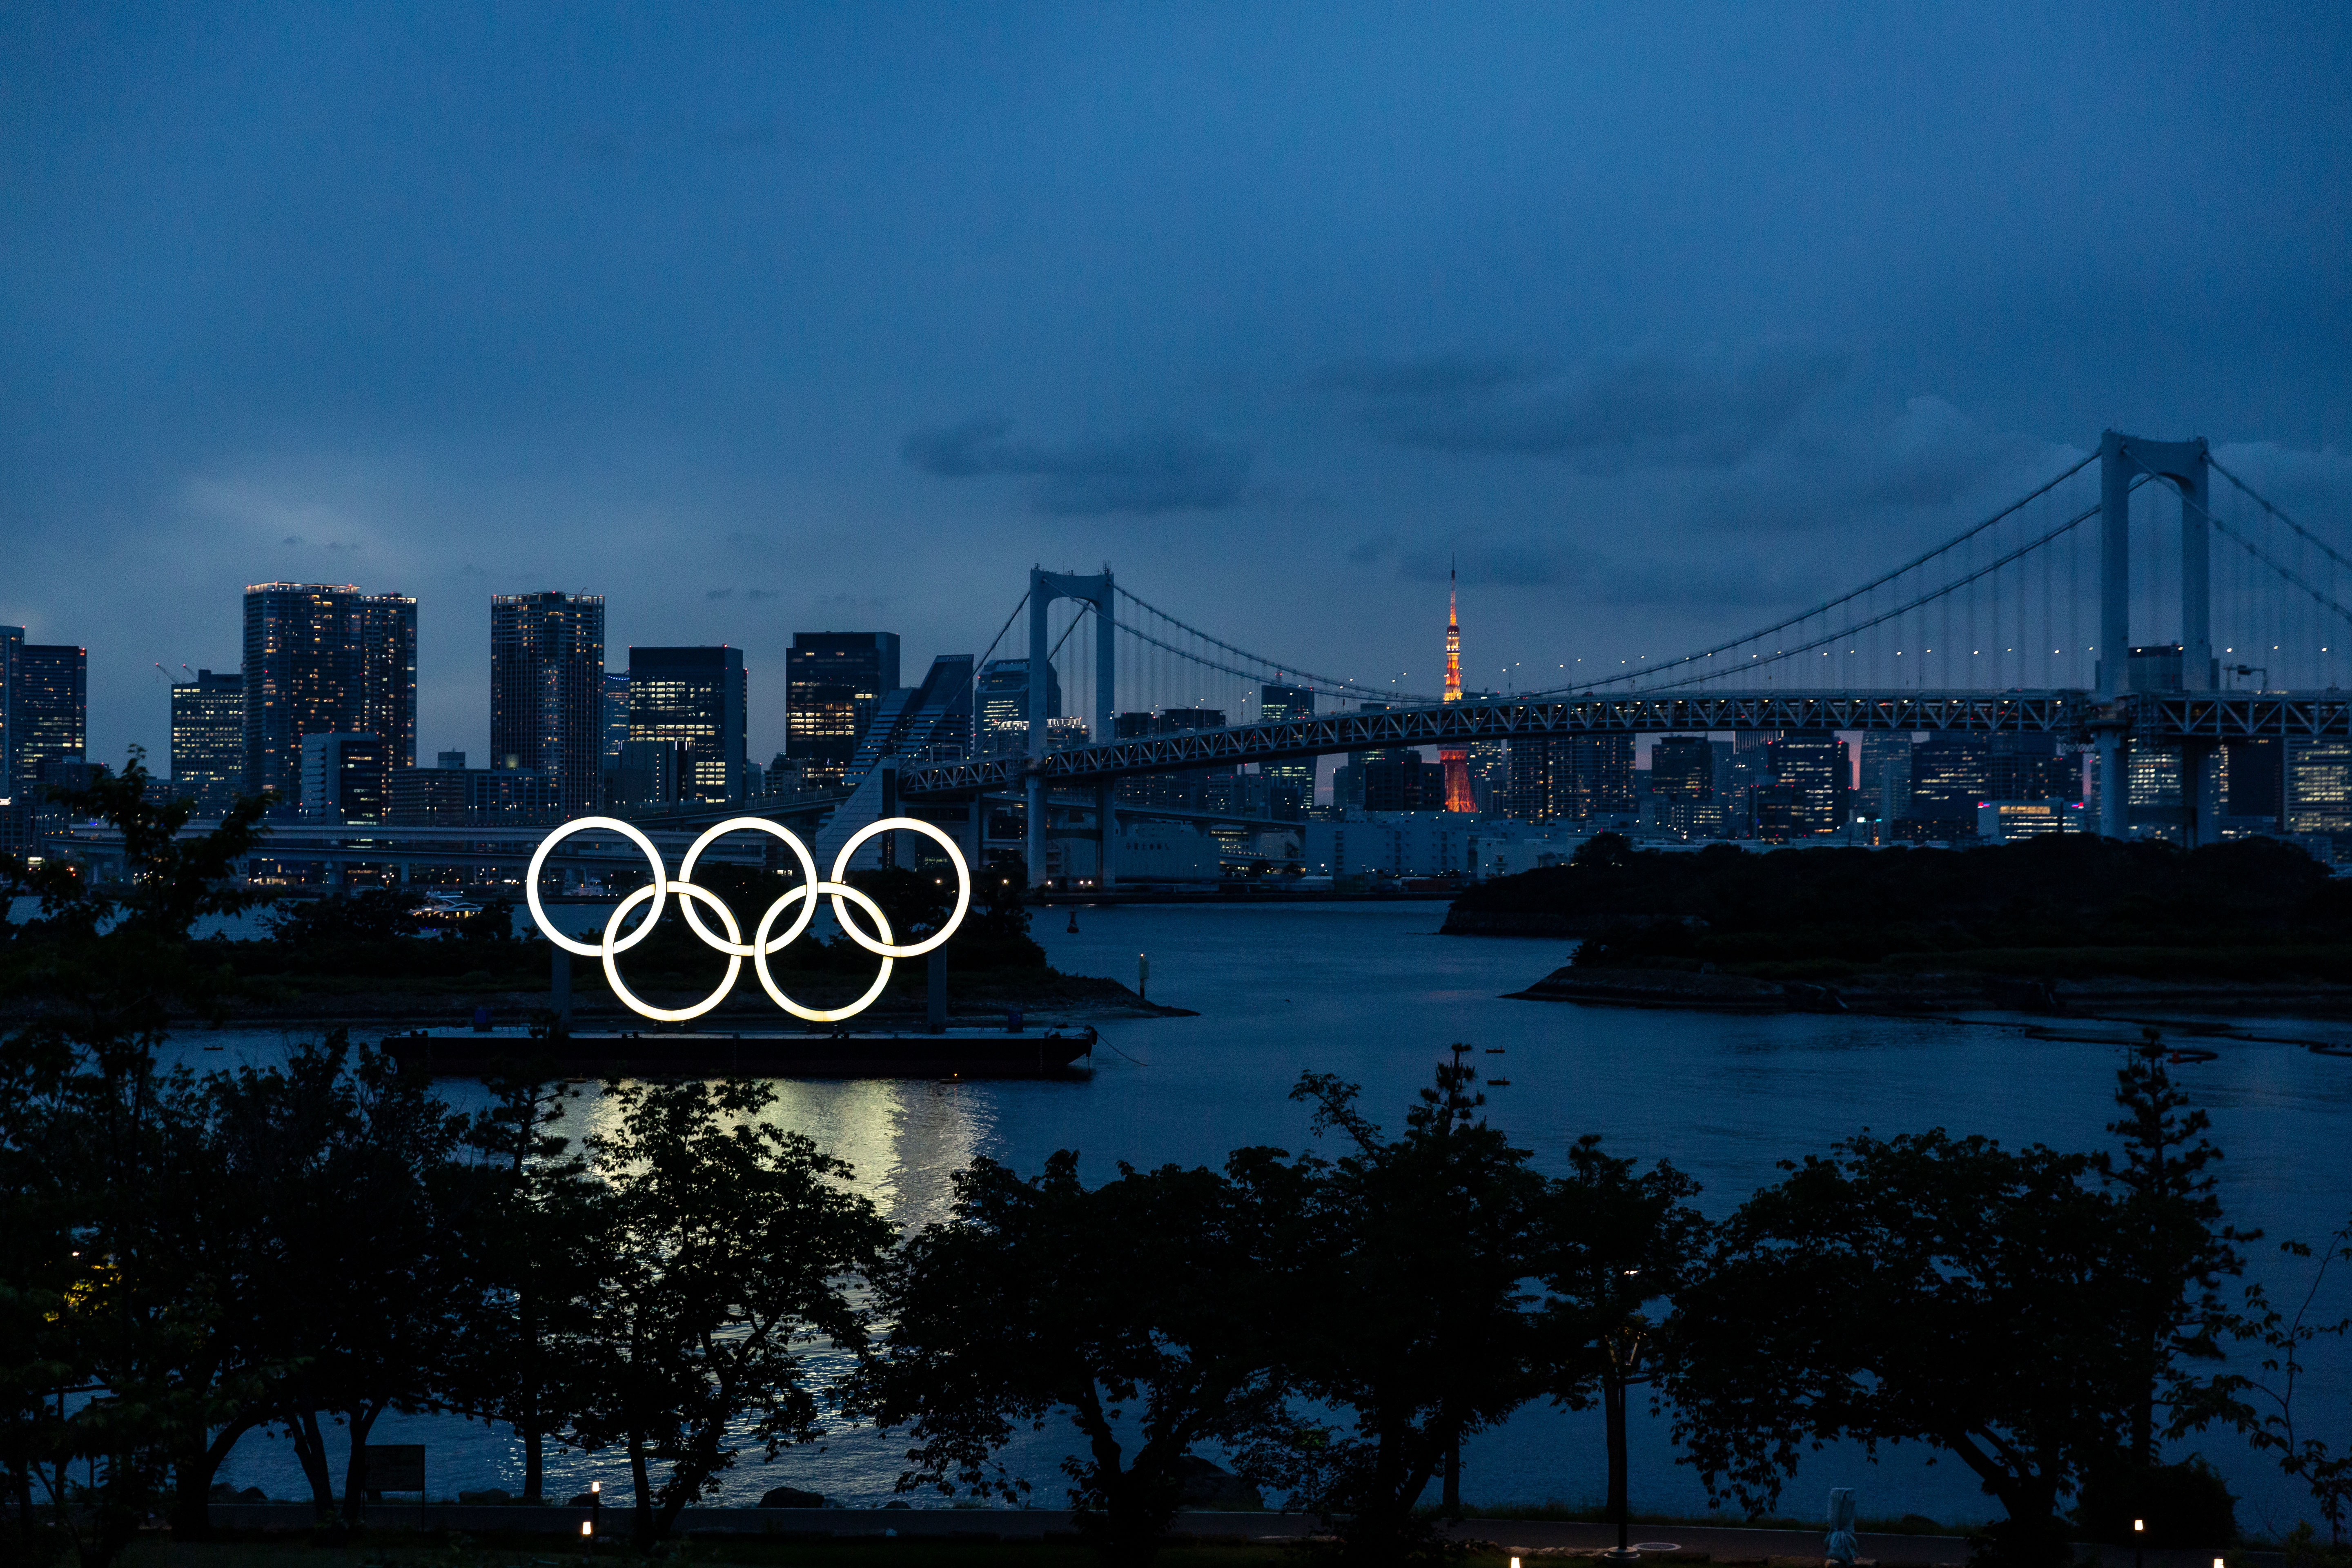 The Olympic rings are displayed by the Odaiba Marine Park in Tokyo on June 3.